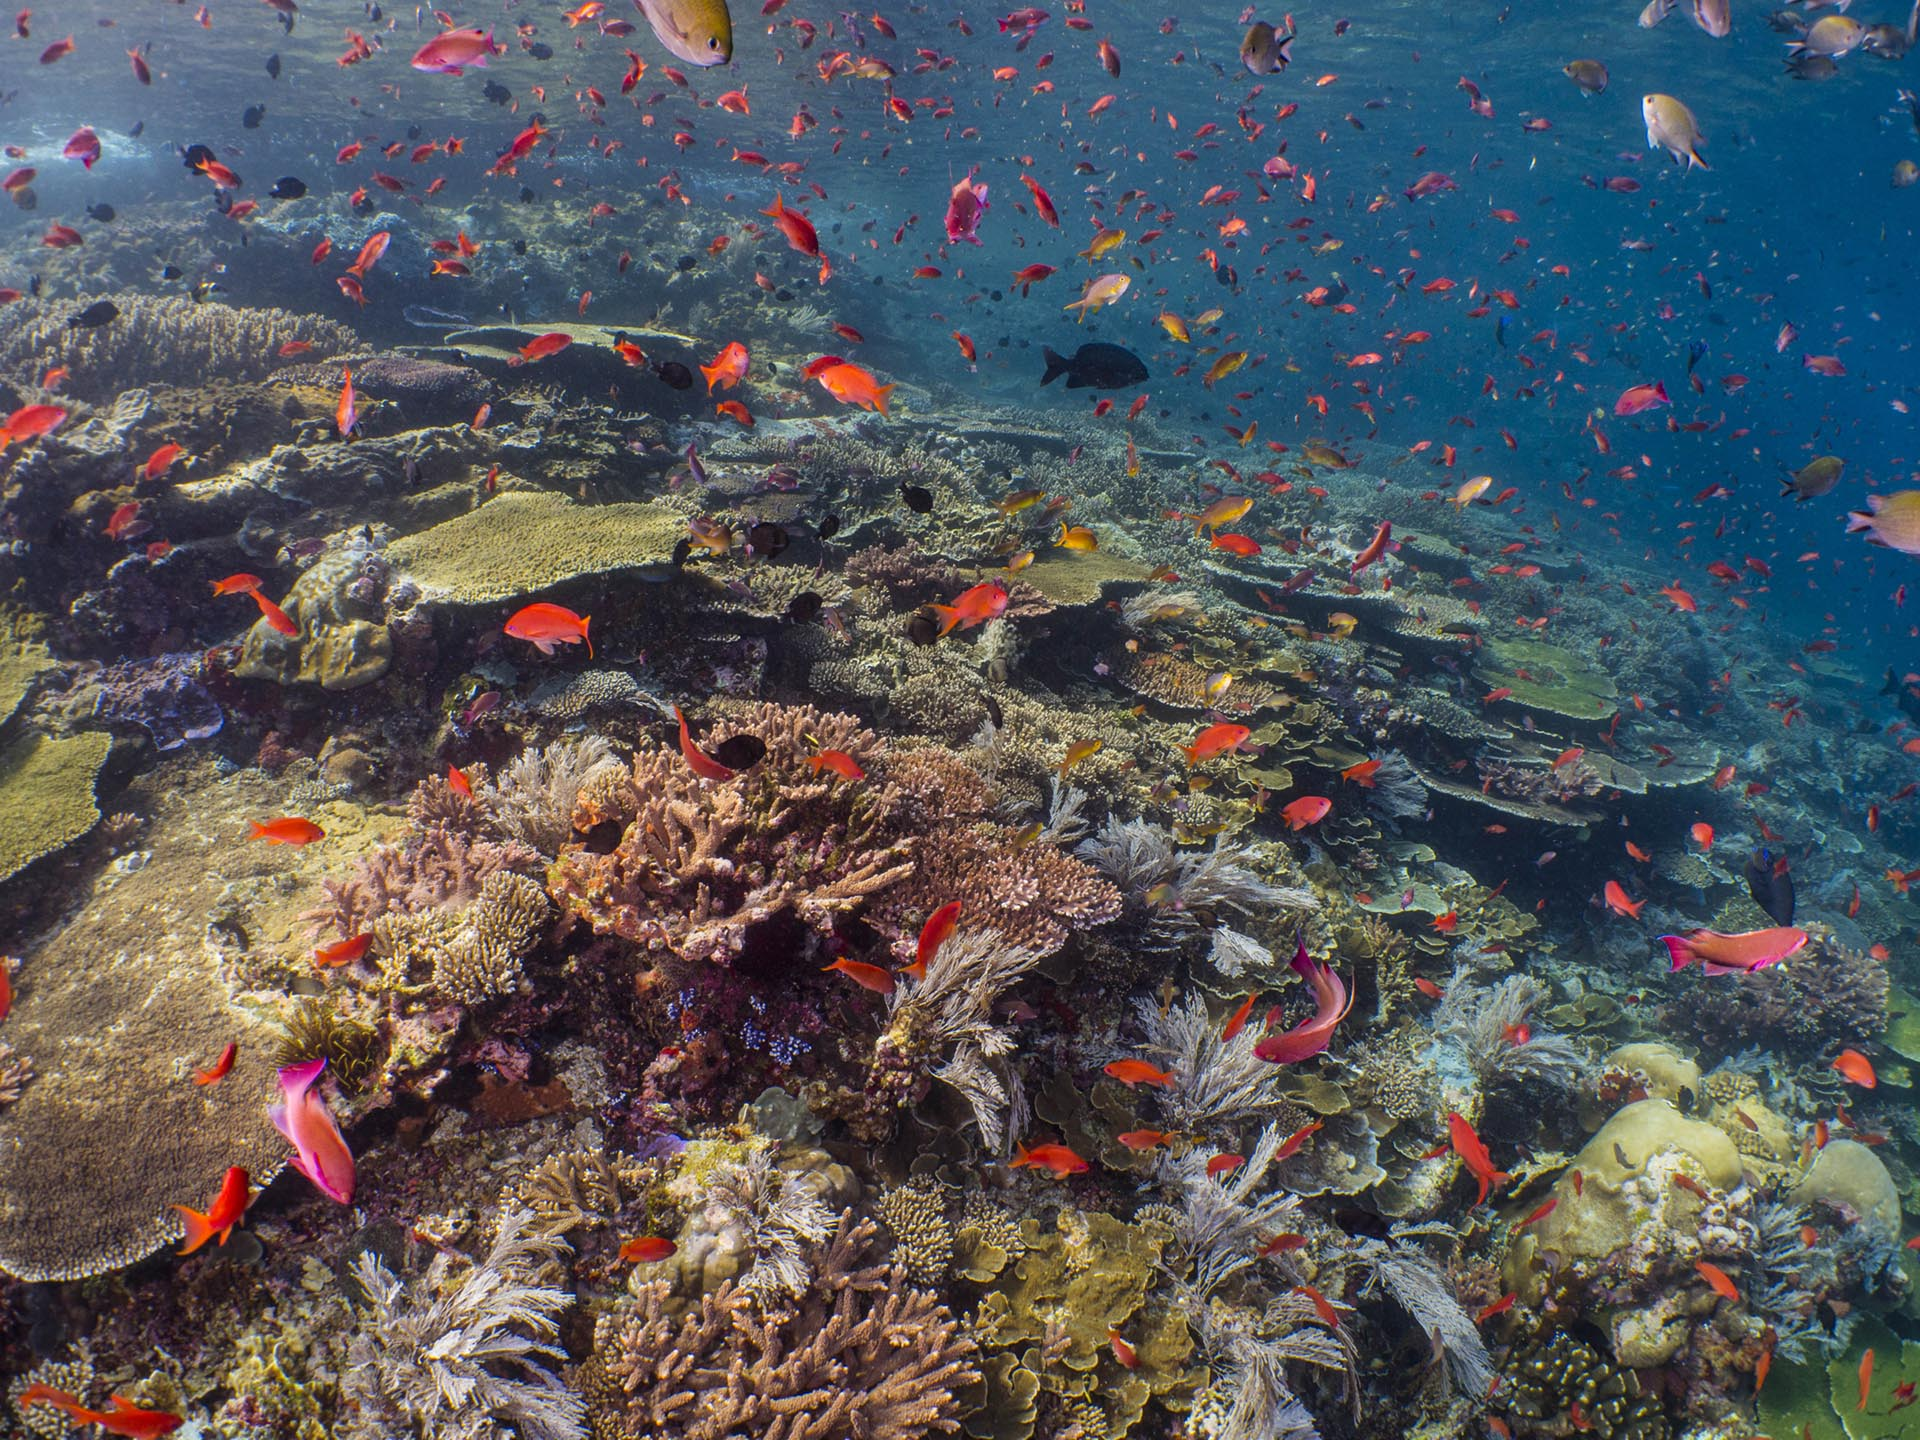 colorful reef and reef fish